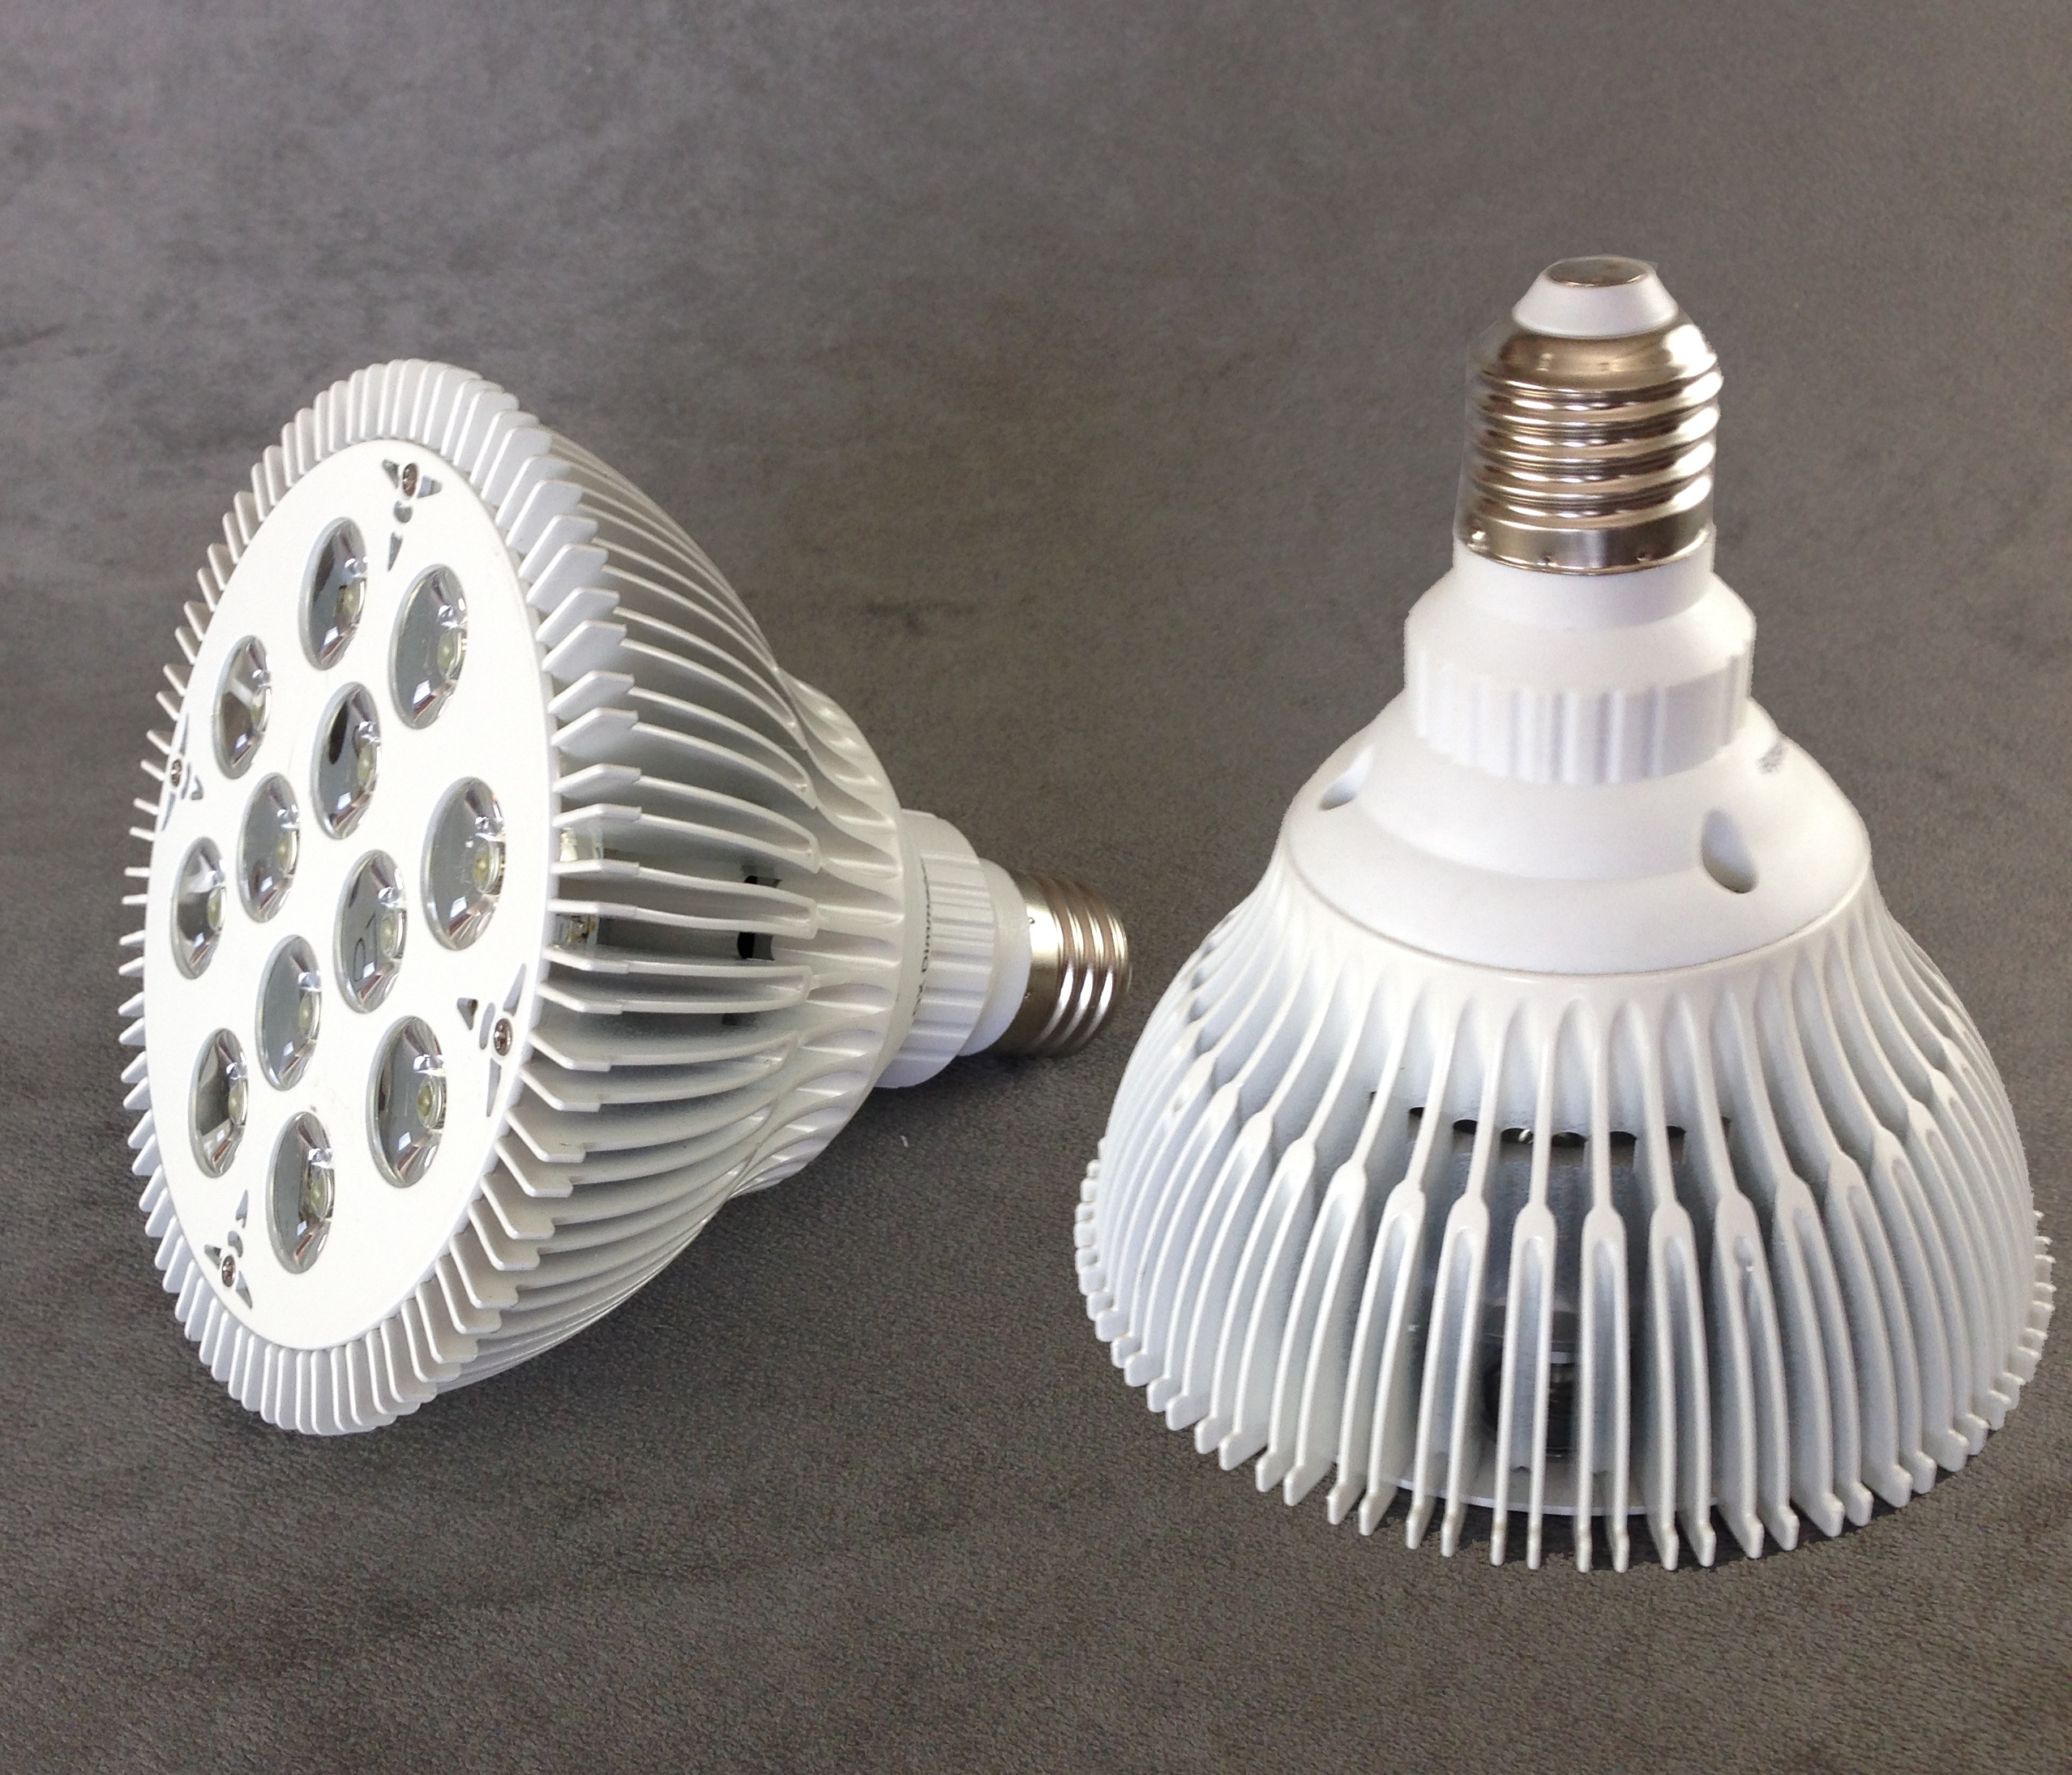 BLED12 High output 12 watt LED par 38 Bulb